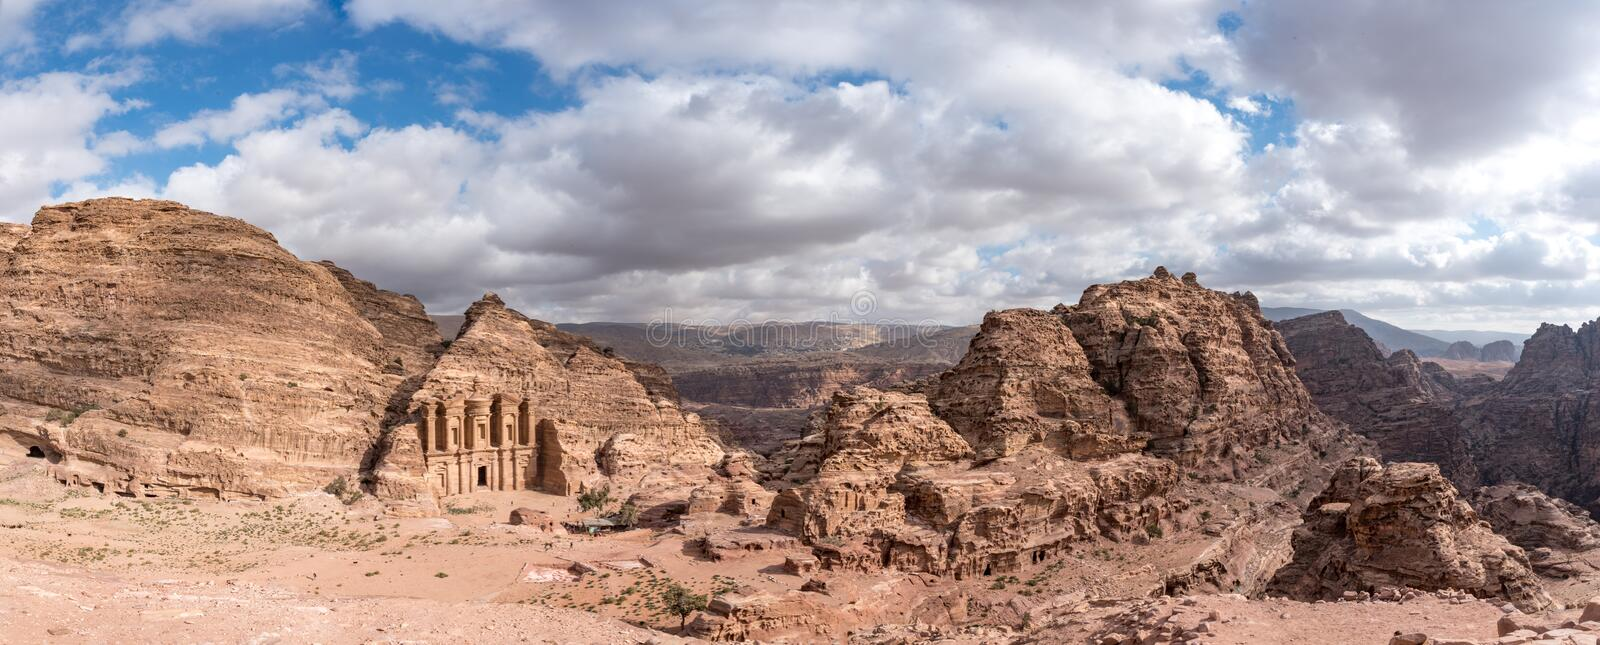 Panorama of Petra Monastery carved in the sandstone cliff face surrounded by more red, and pink cliffs and a blue cloud filled sky stock photos